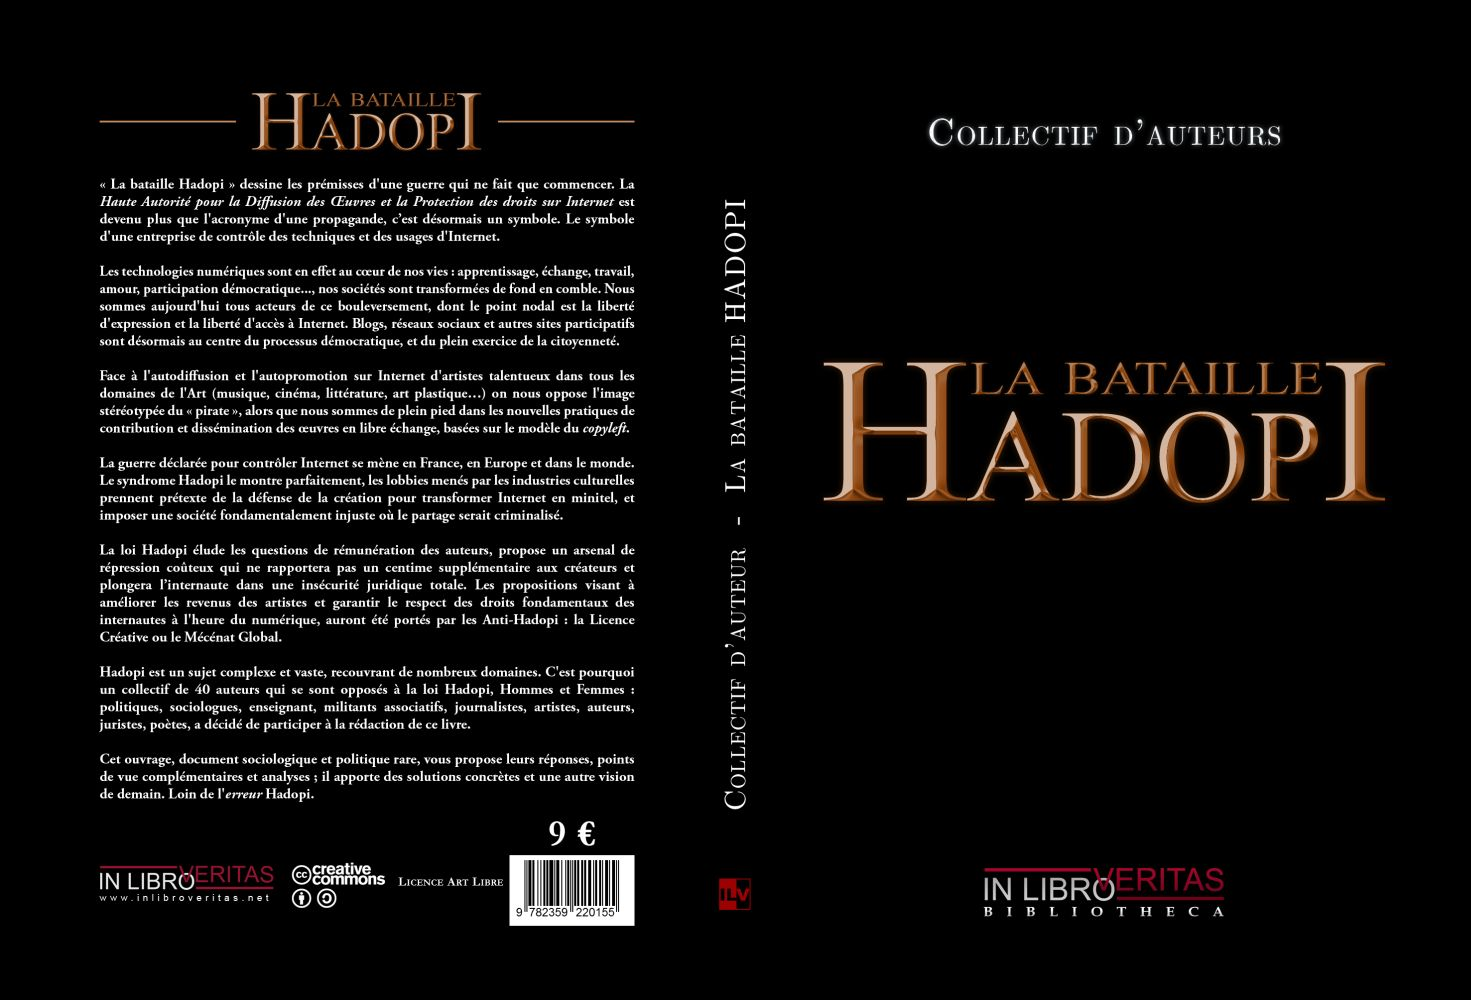 File:La bataille HADOPI - version bronze.jpg - Wikimedia Commons